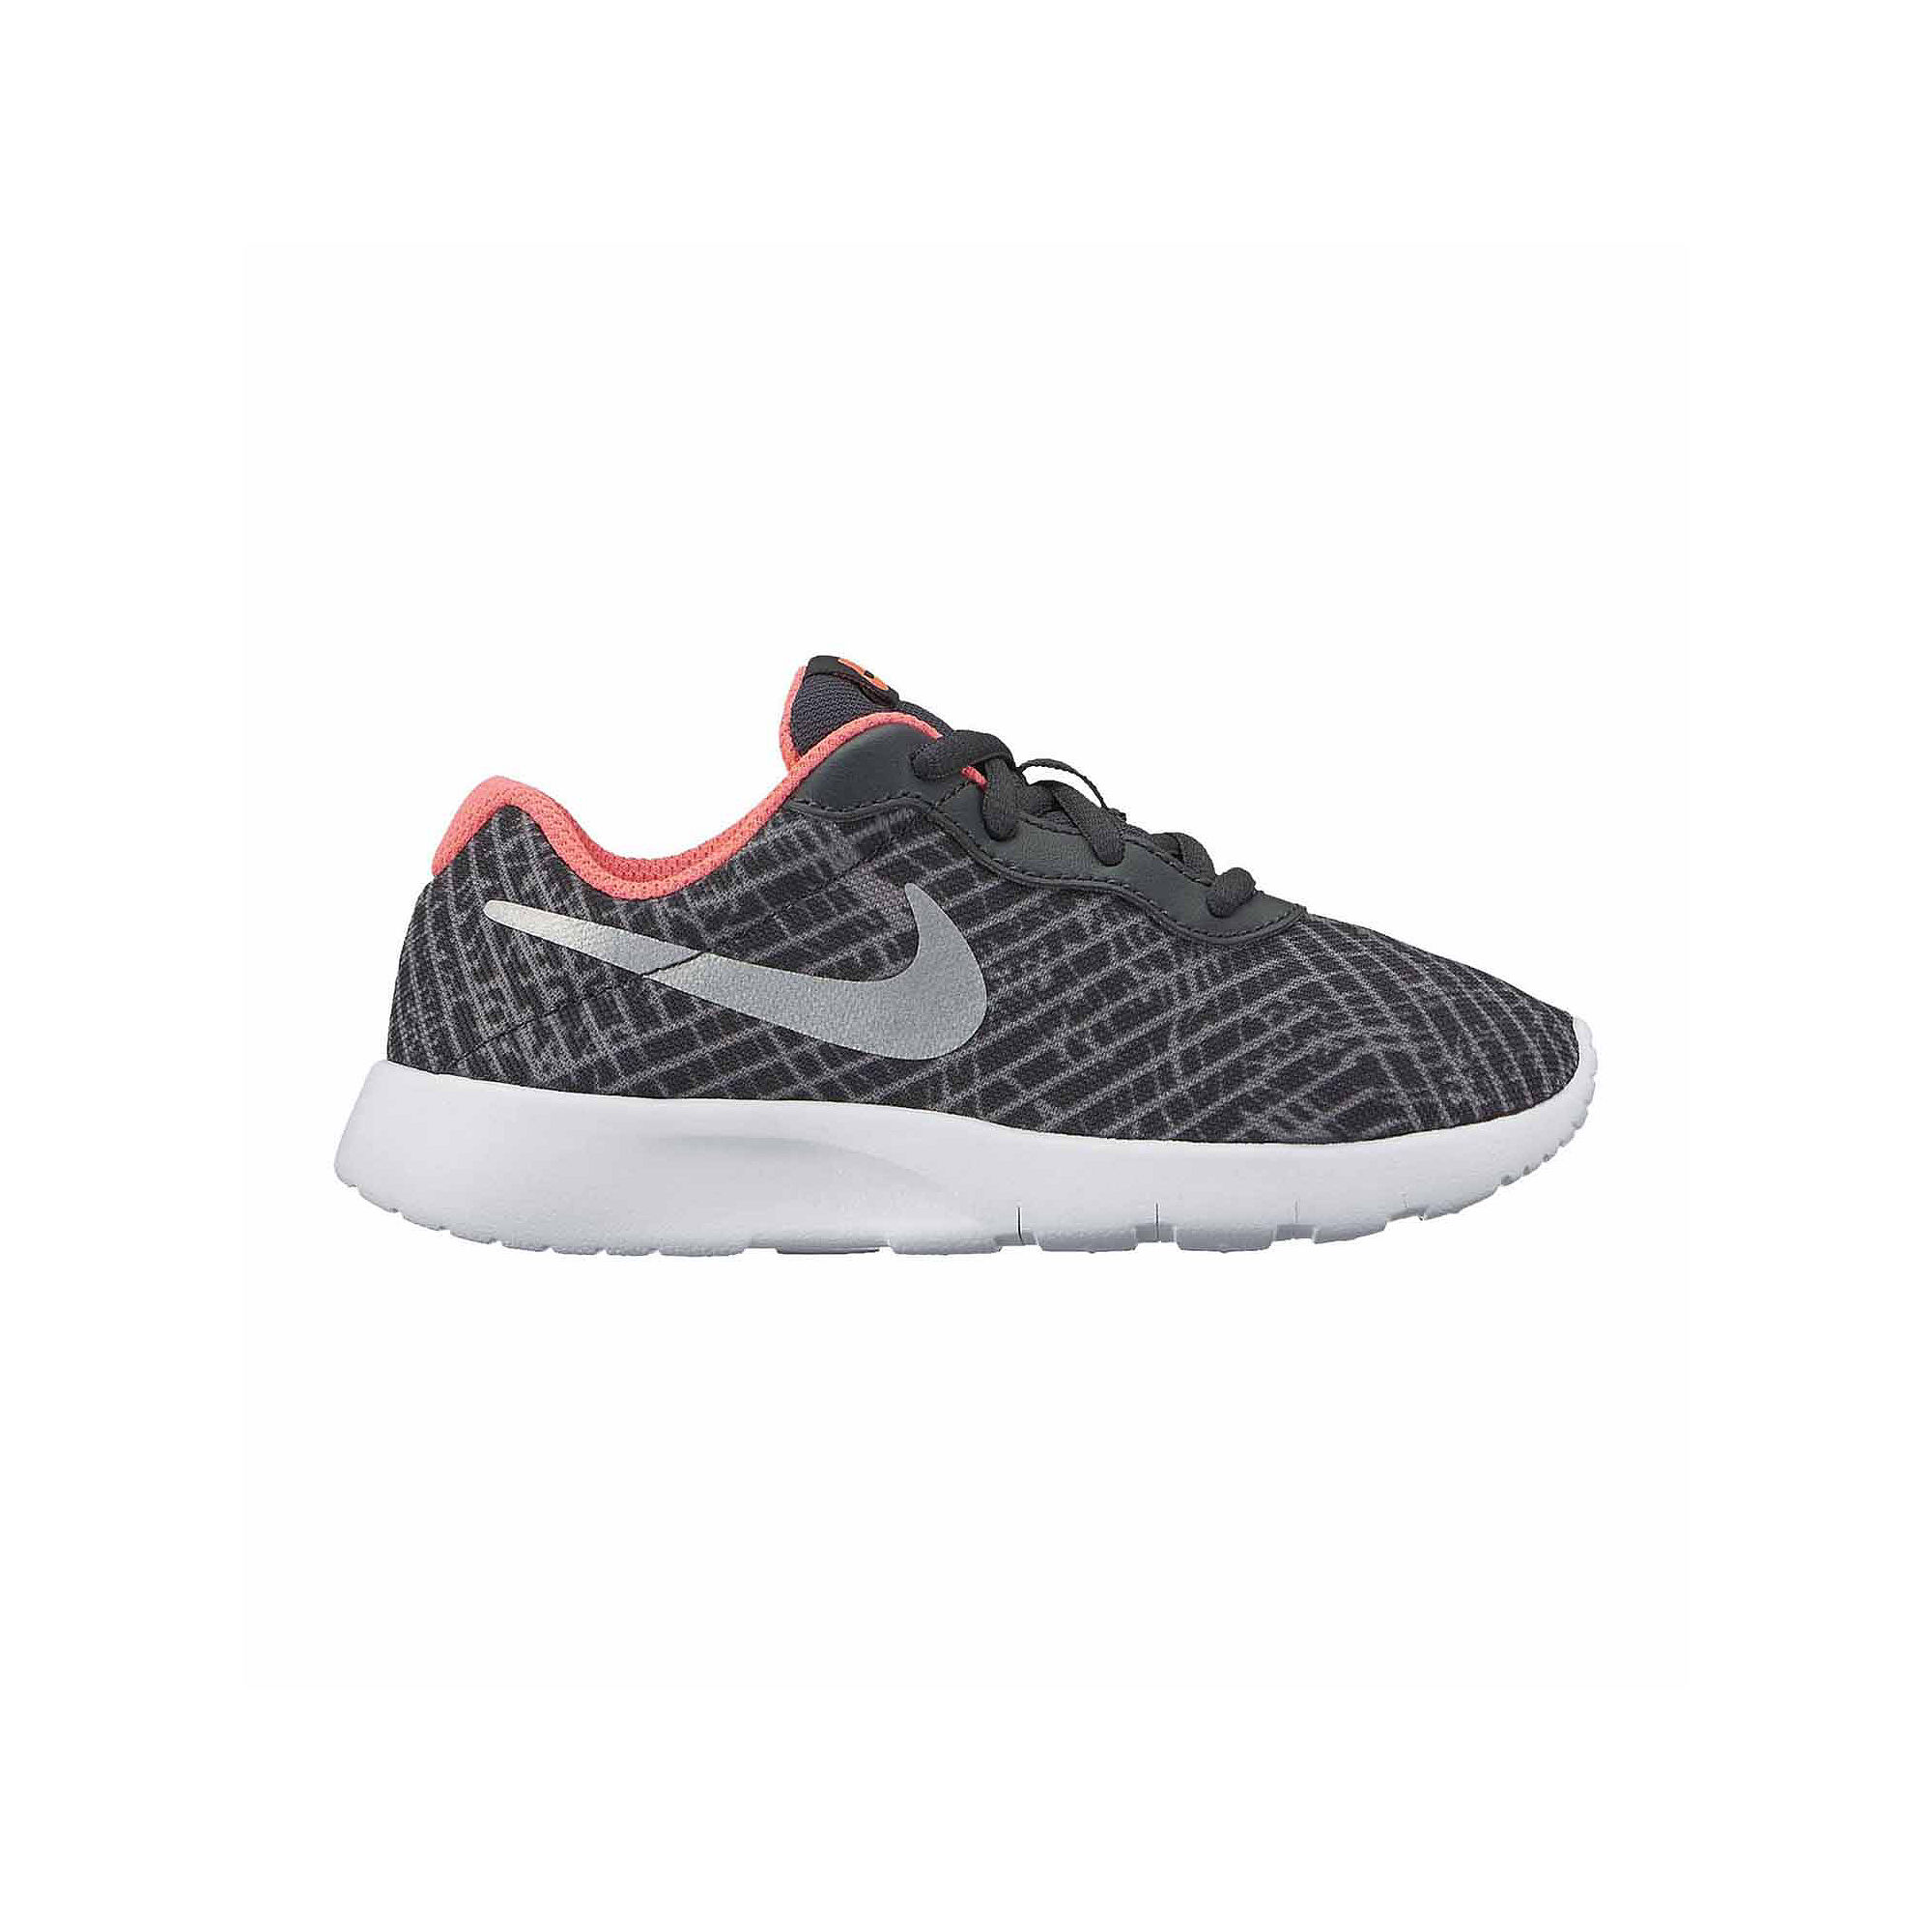 Nike Tanjun Print Girls Sneakers - Little Kids